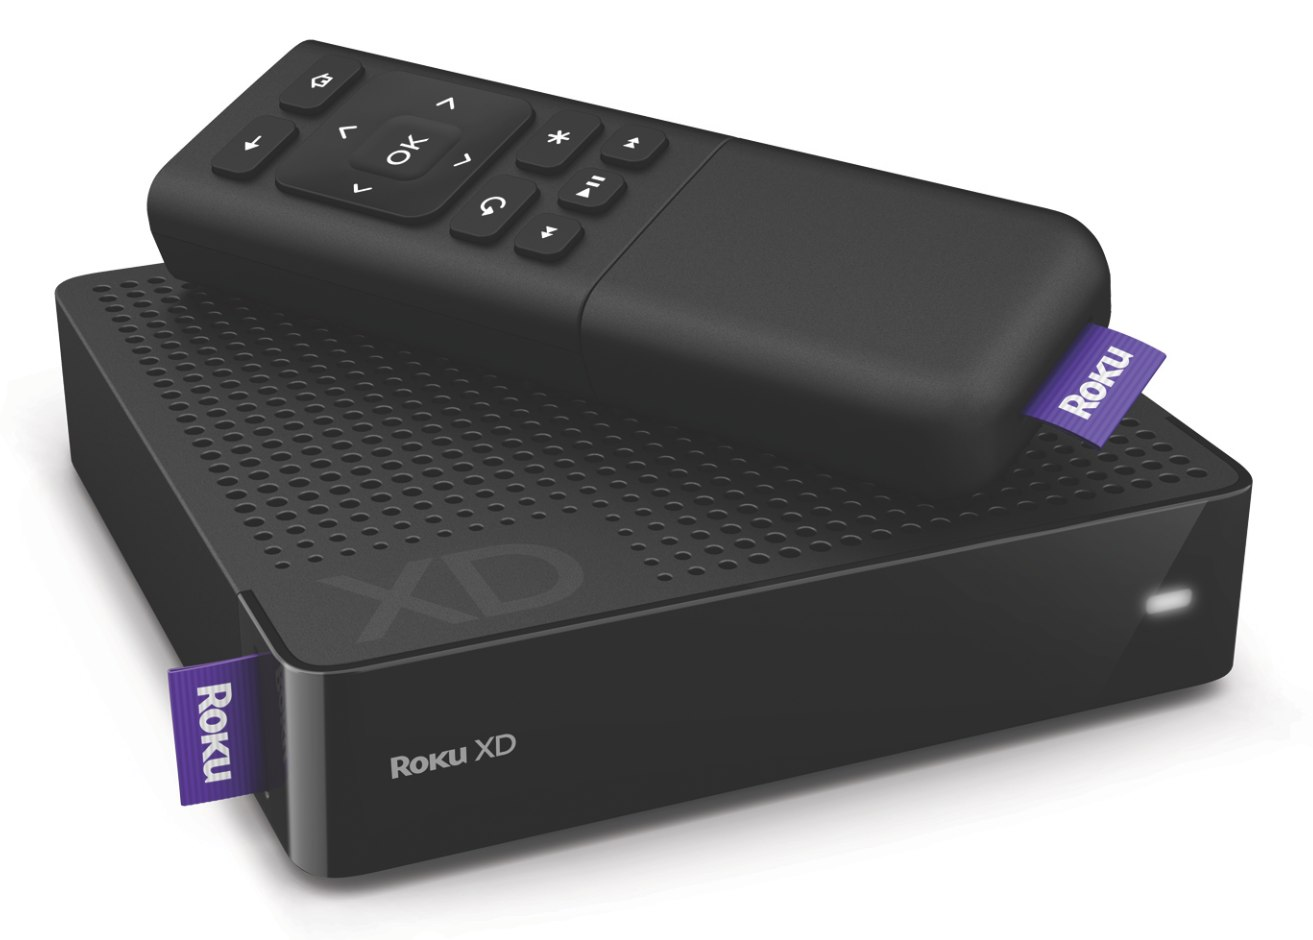 The Roku XD is coming to Best Buy.